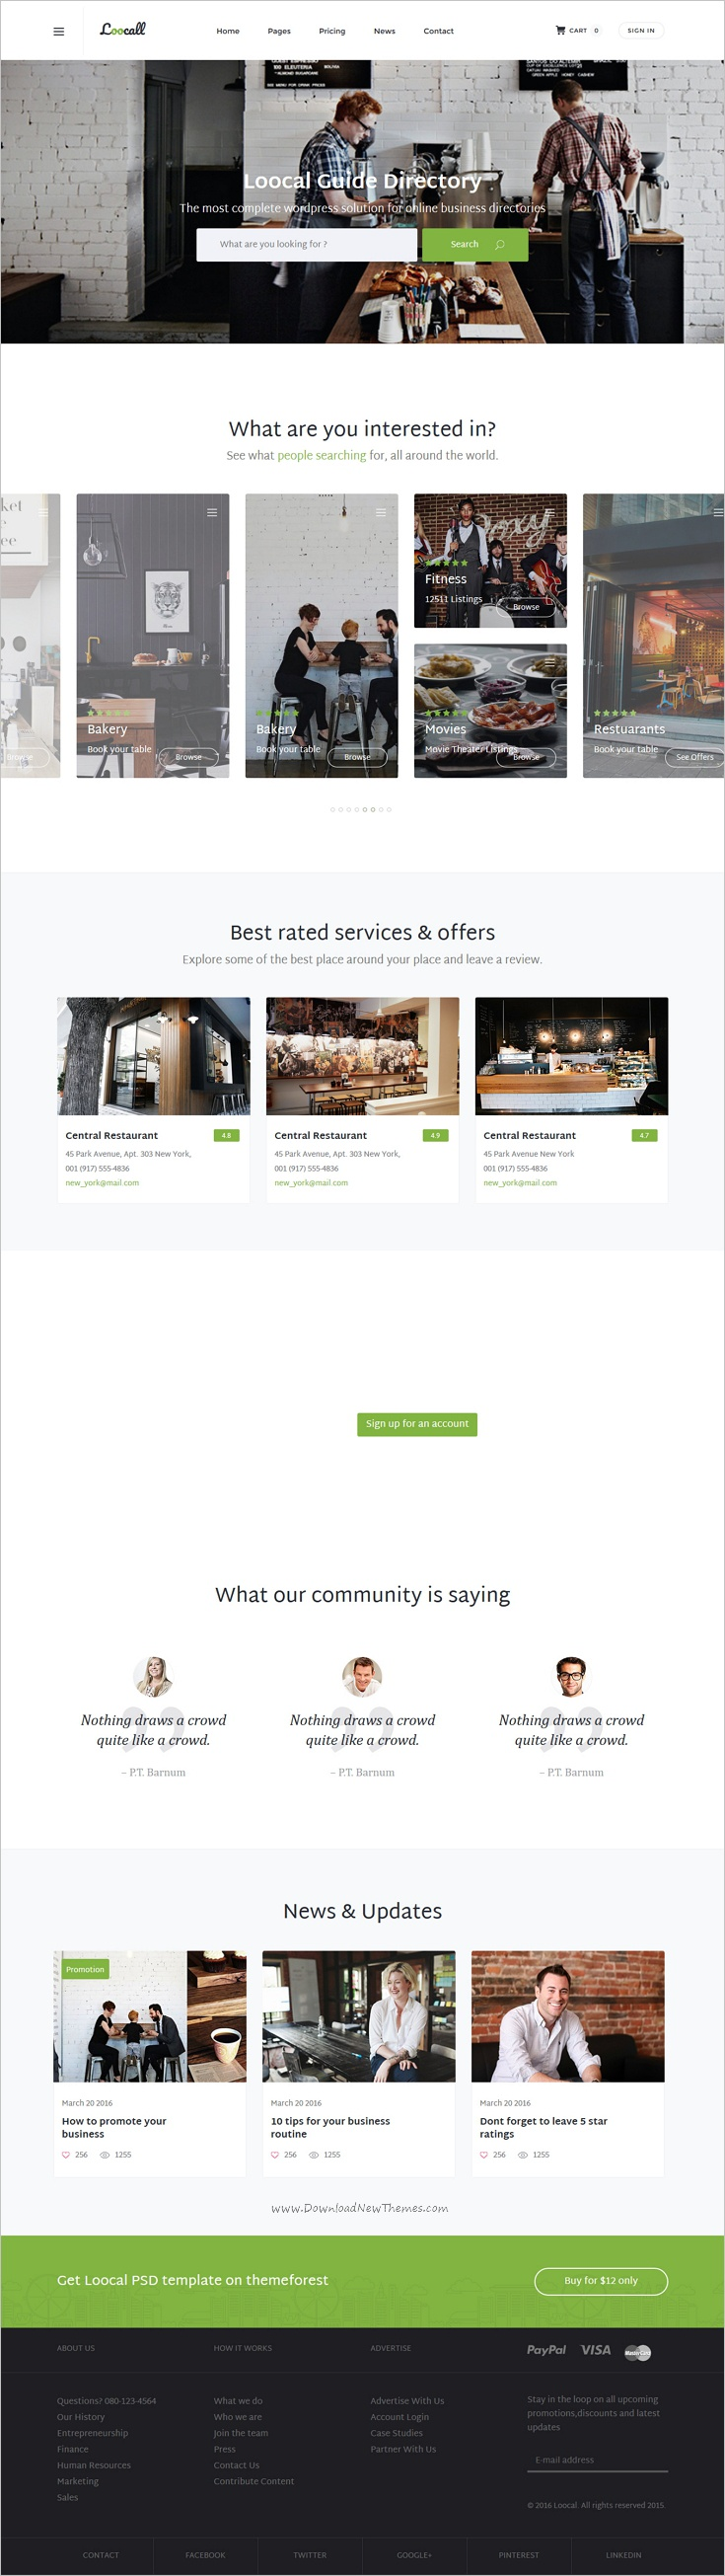 Loocall modern business directory pinterest list website loocall is a wonderful bootstrap template for modern business directory listing website download now friedricerecipe Image collections